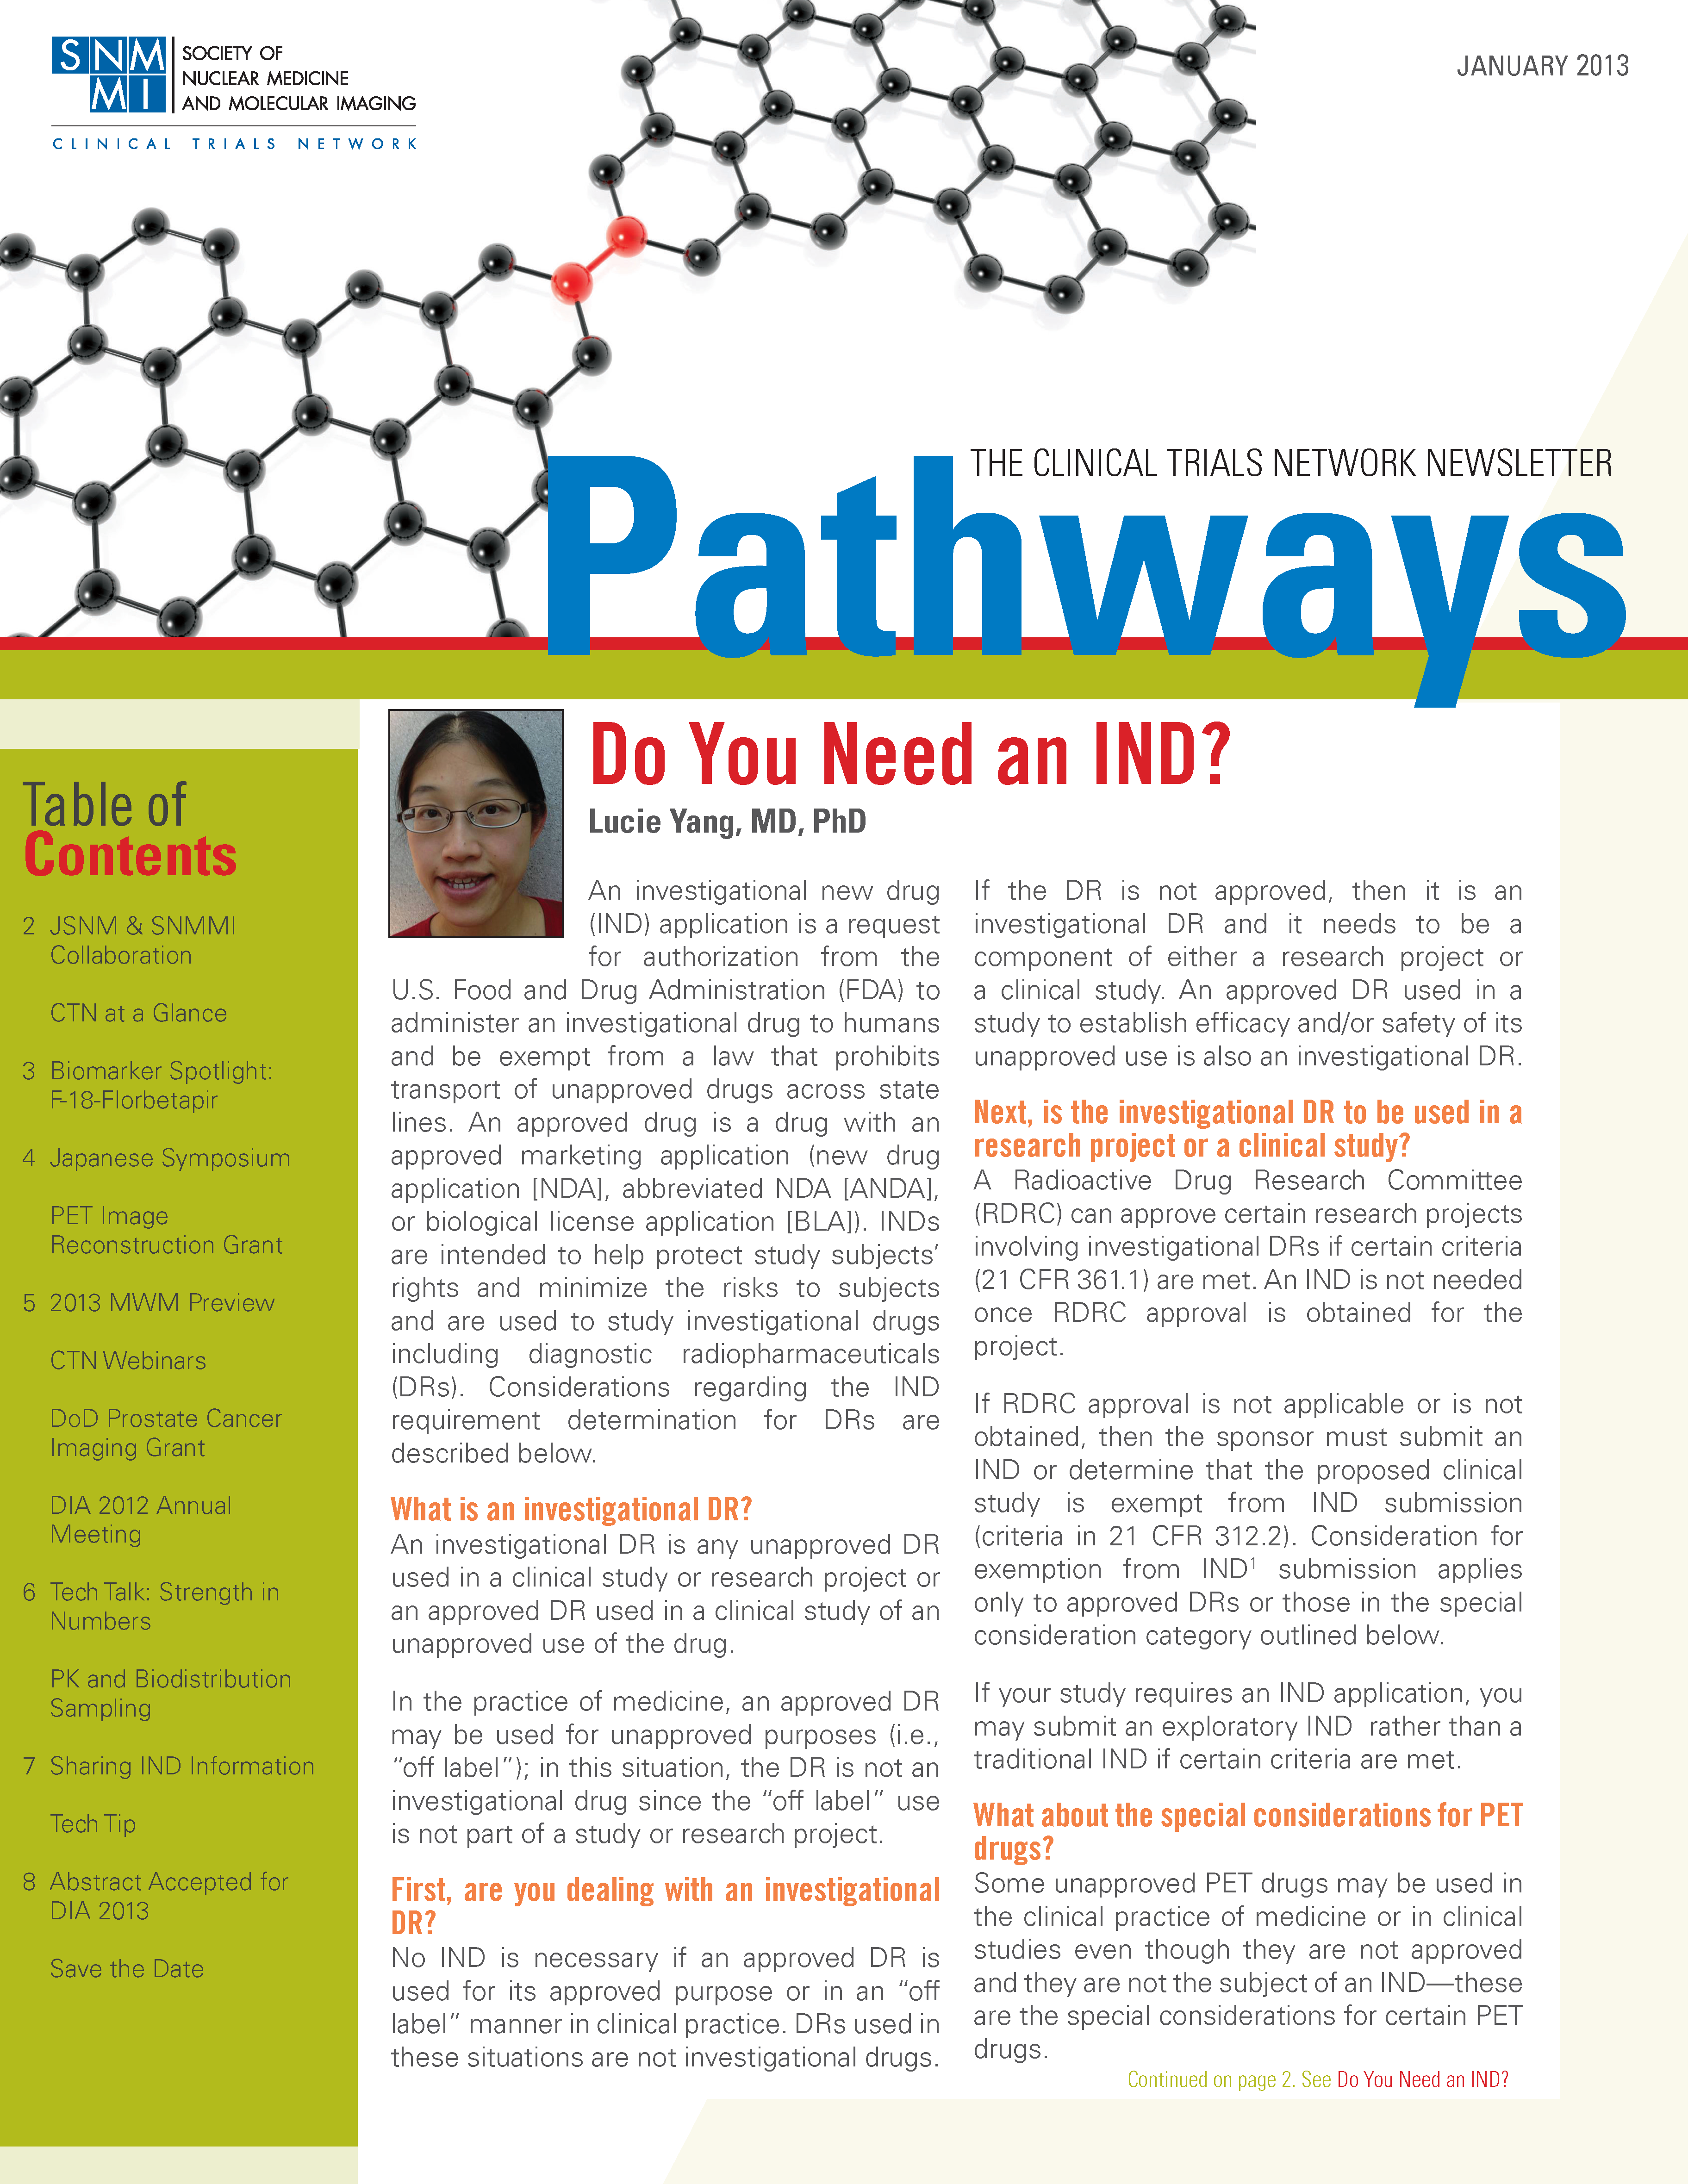 Pathways January 2013